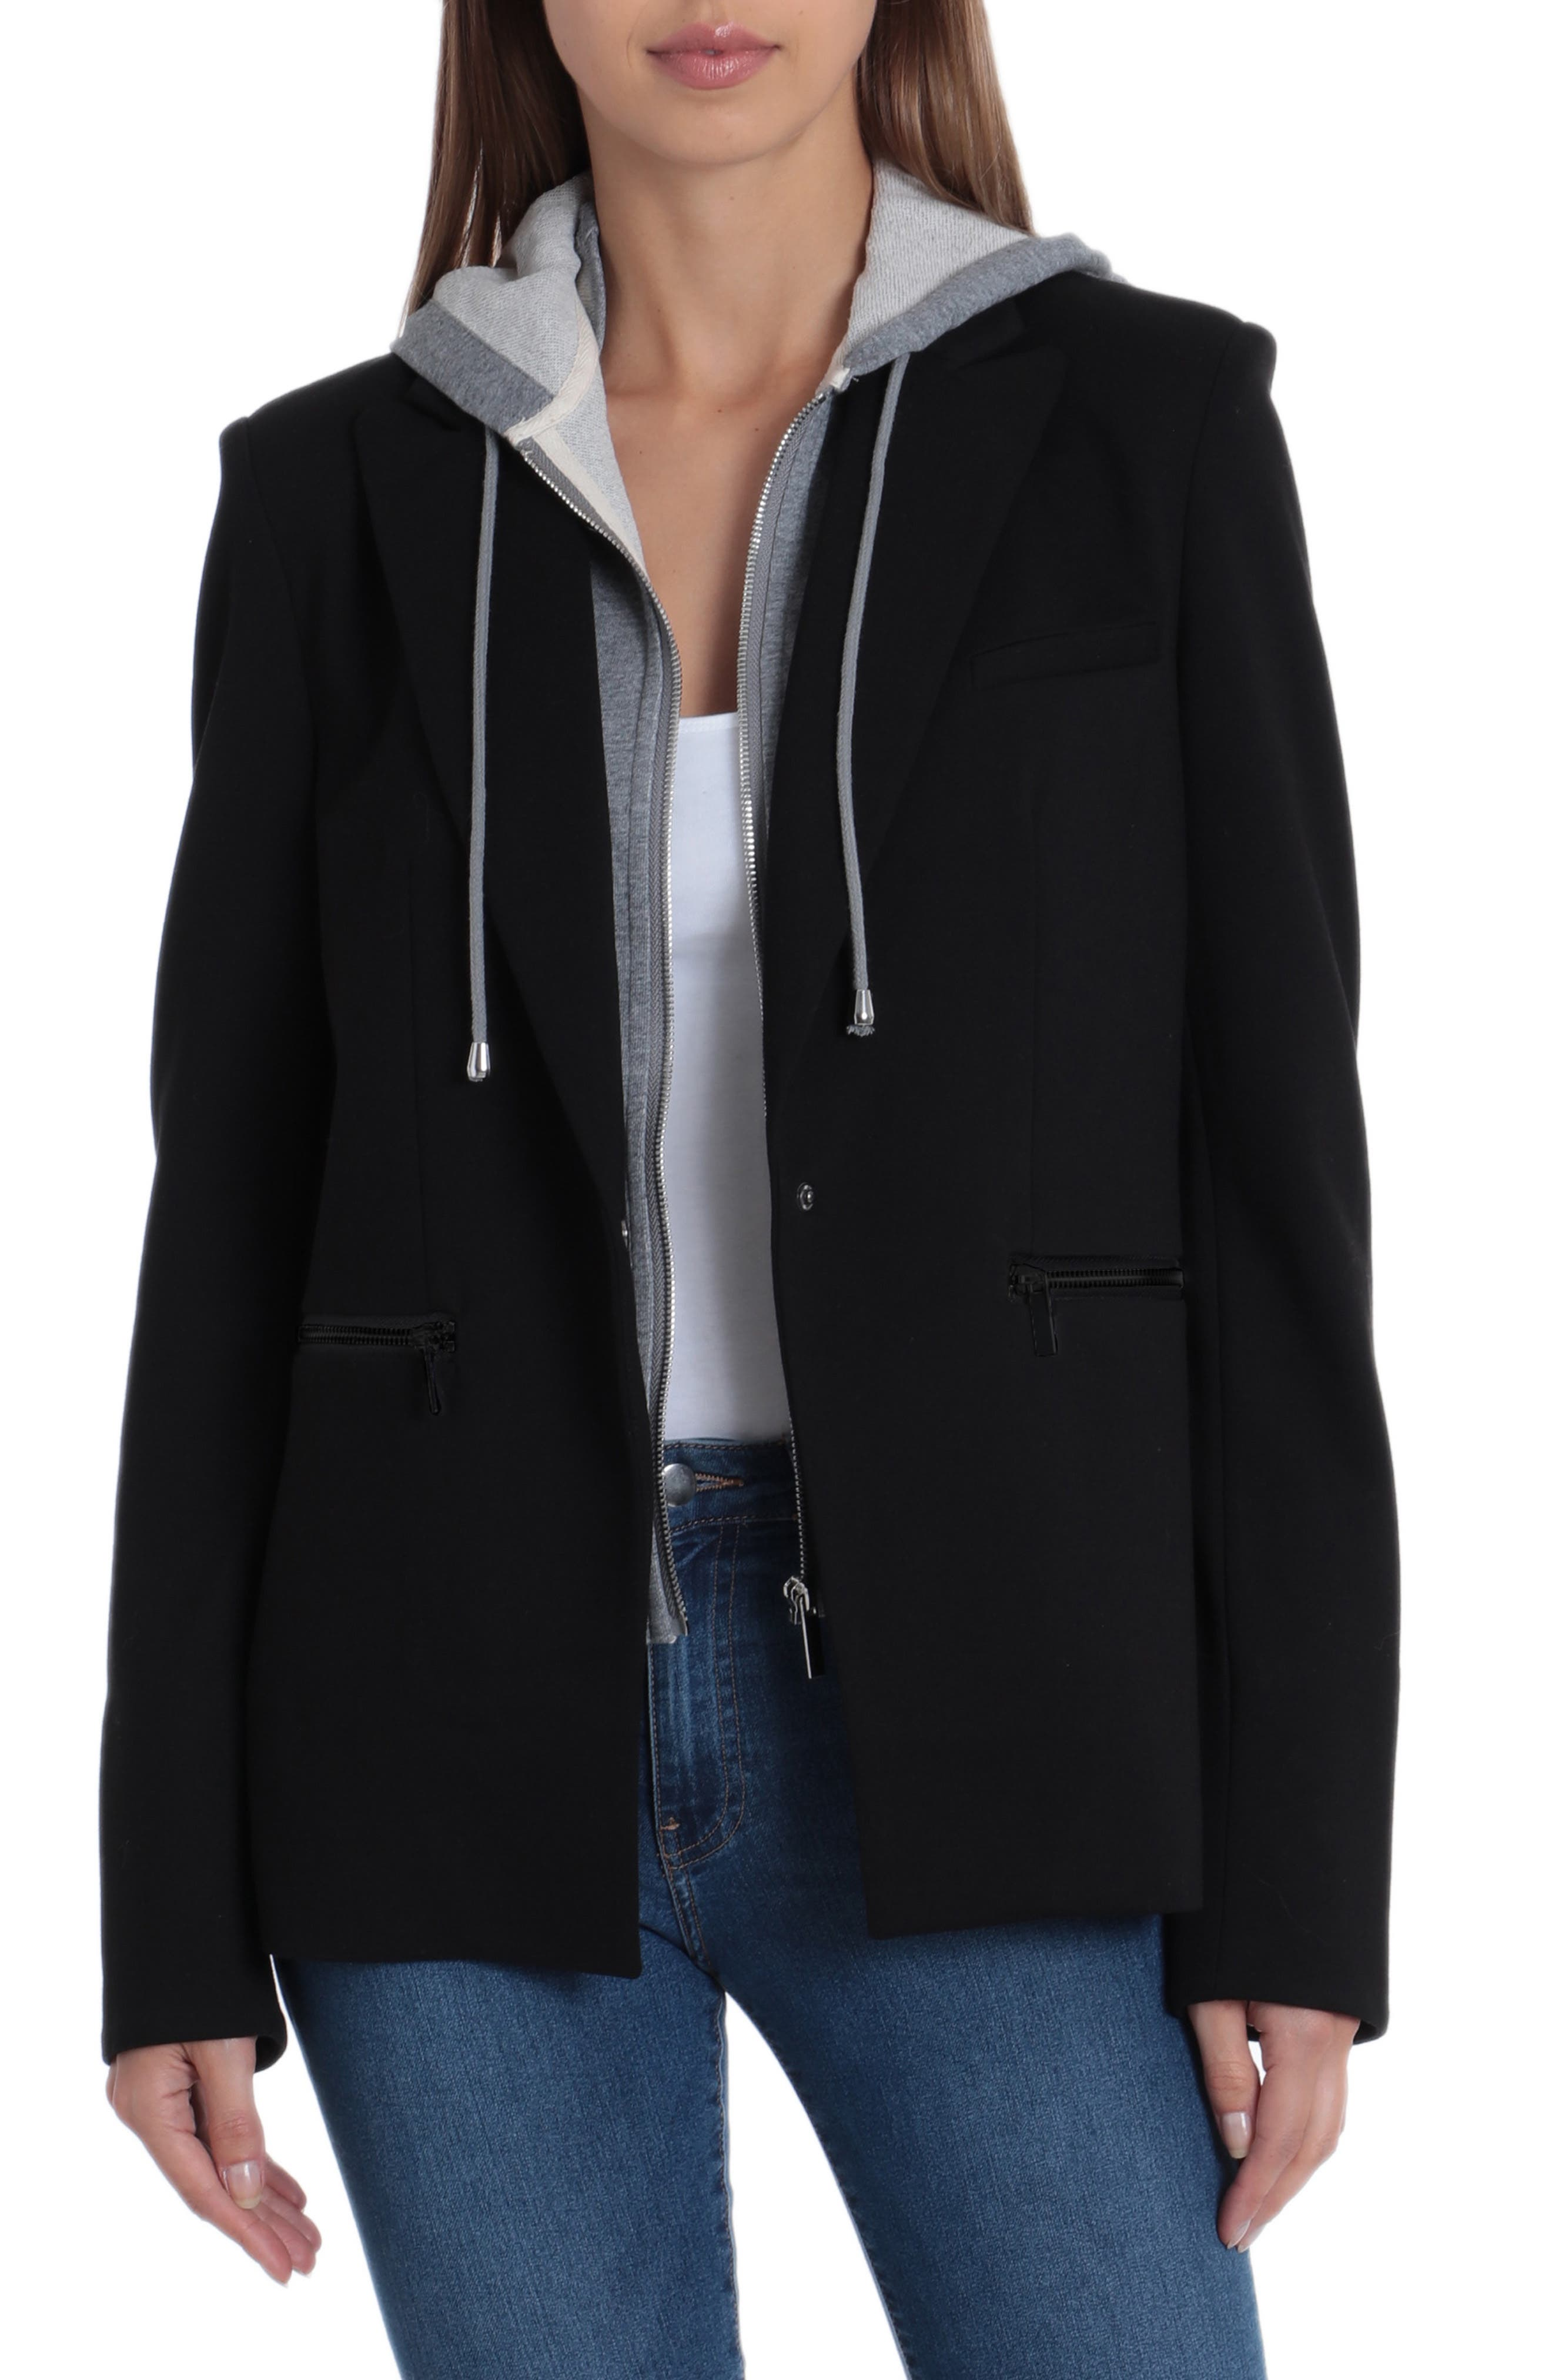 BAGATELLE Blazer With Detachable French Terry Hood in Black/Gray